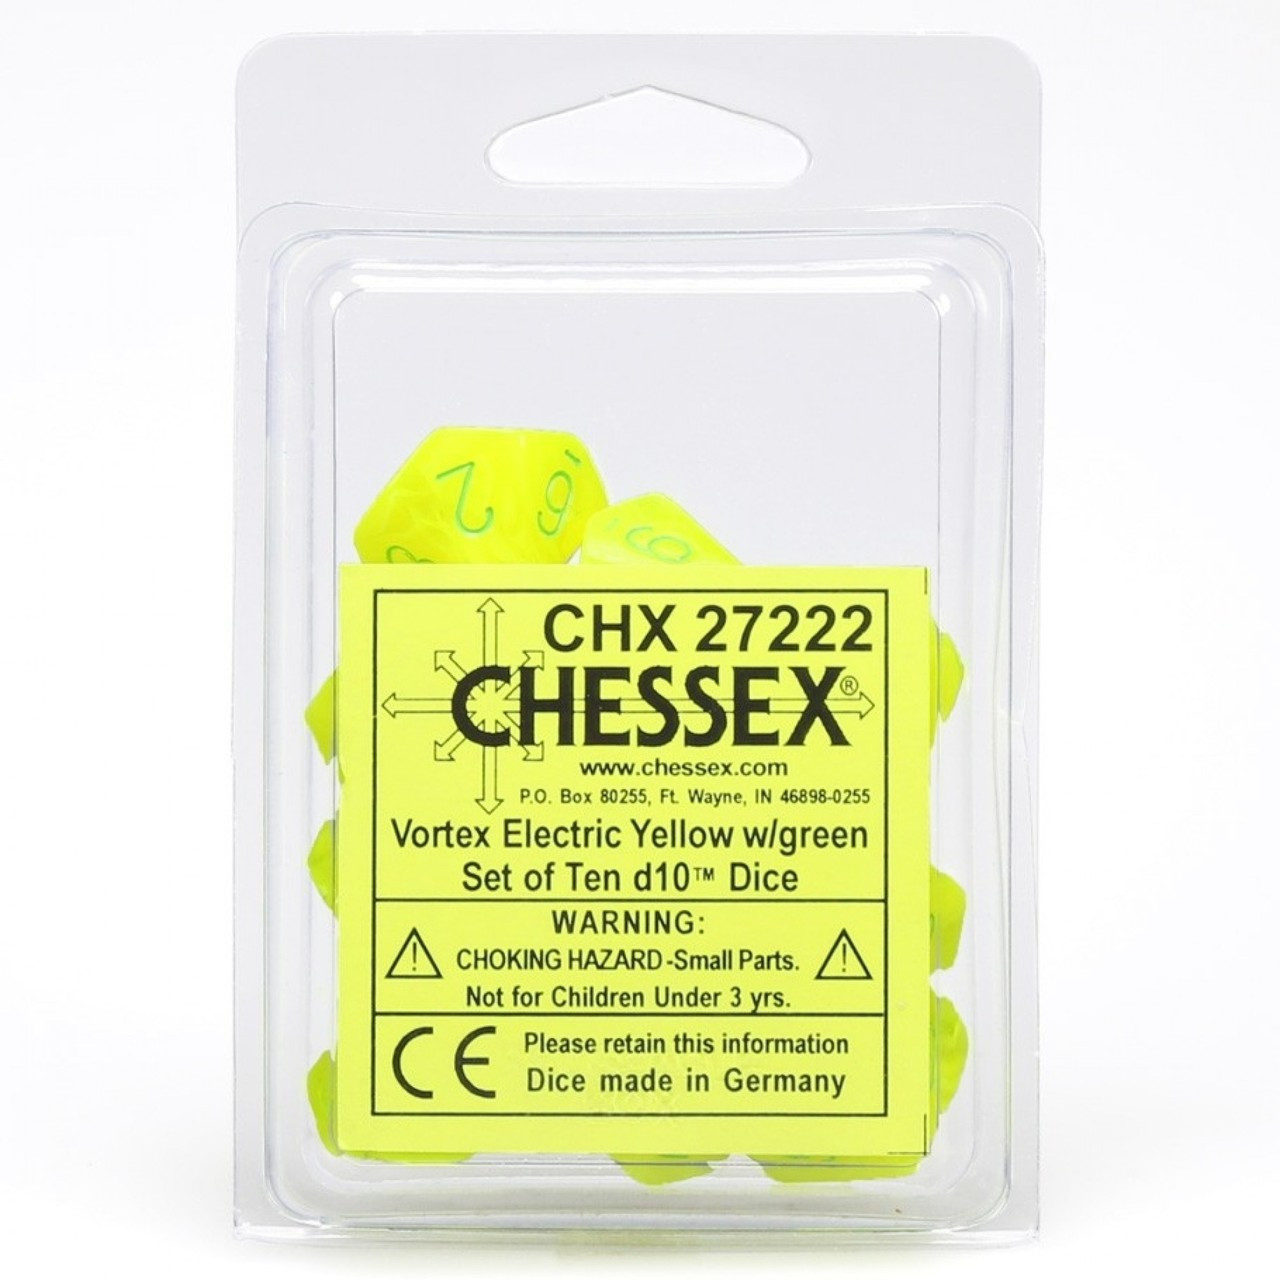 Chessex: Vortex Electric Yellow w/Green Set of 10 Dice (CHX27222)